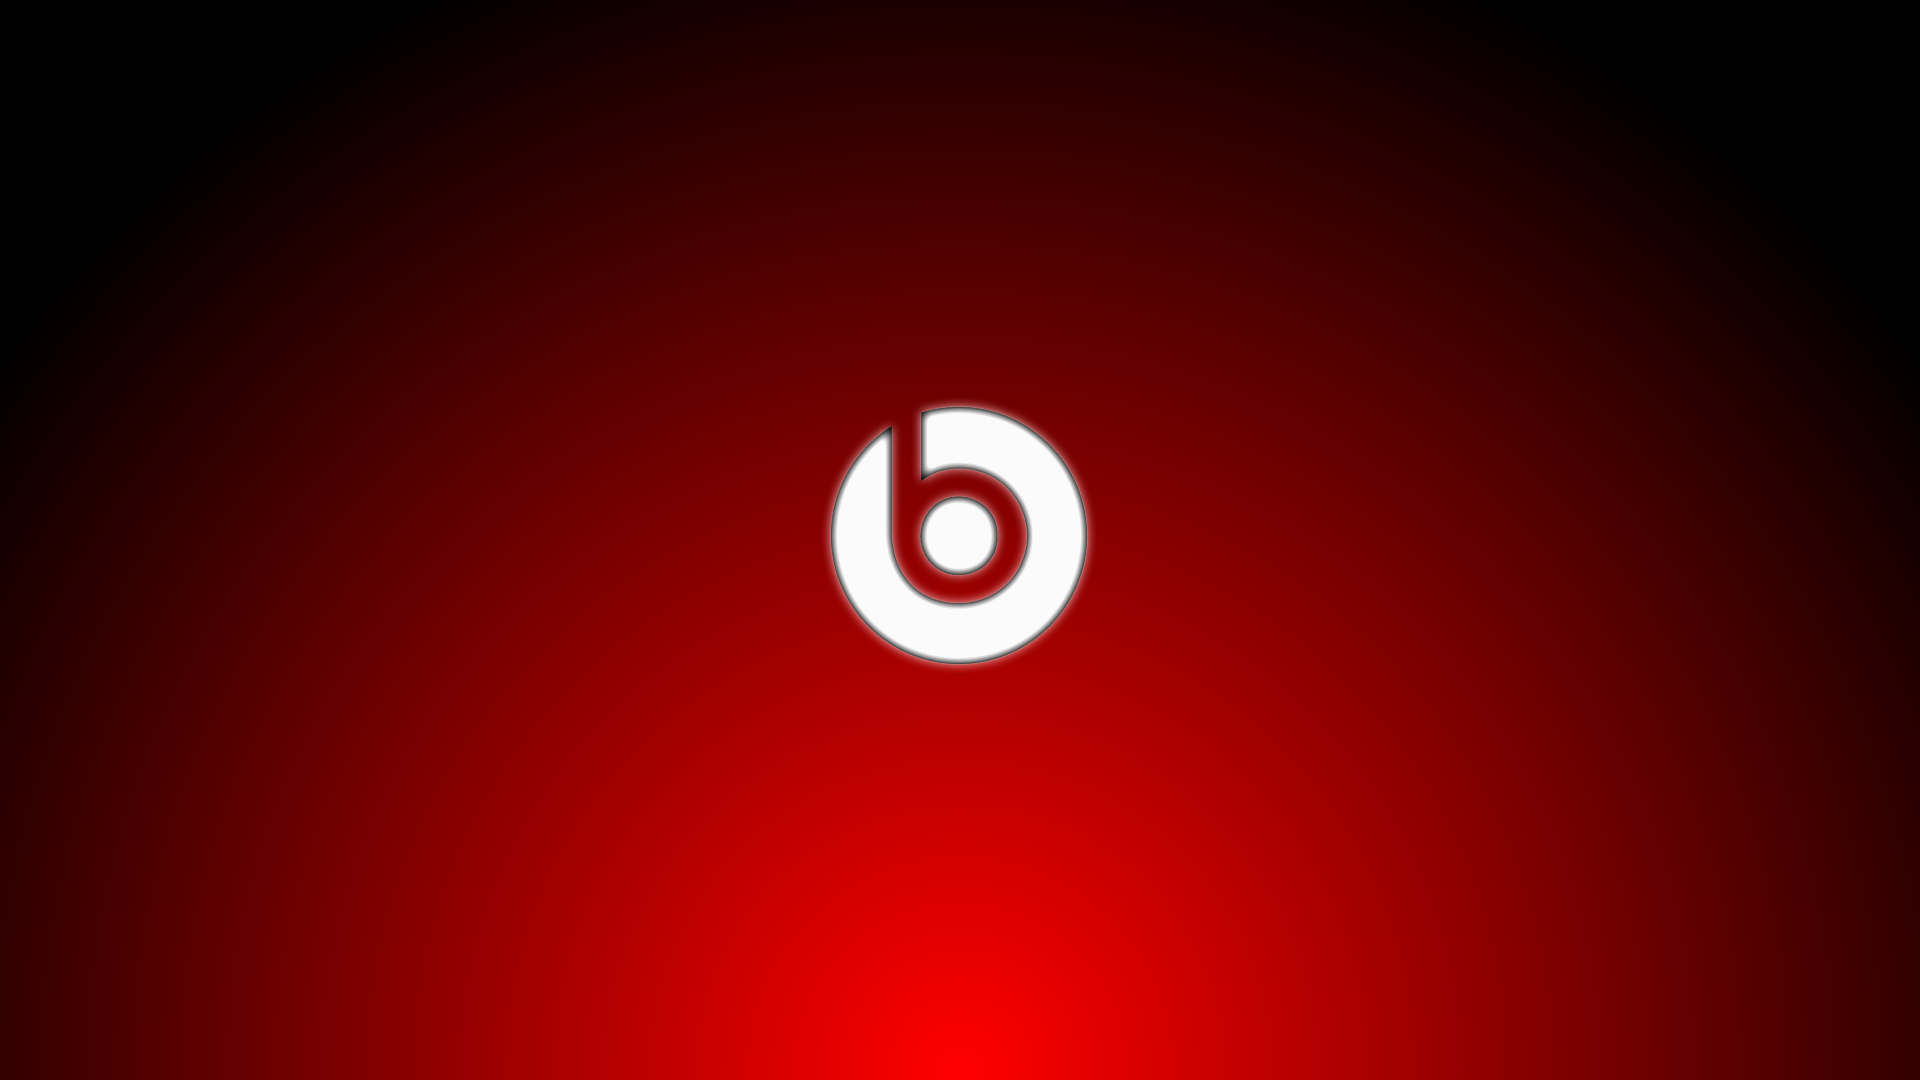 beats by dre wallpaper 20869